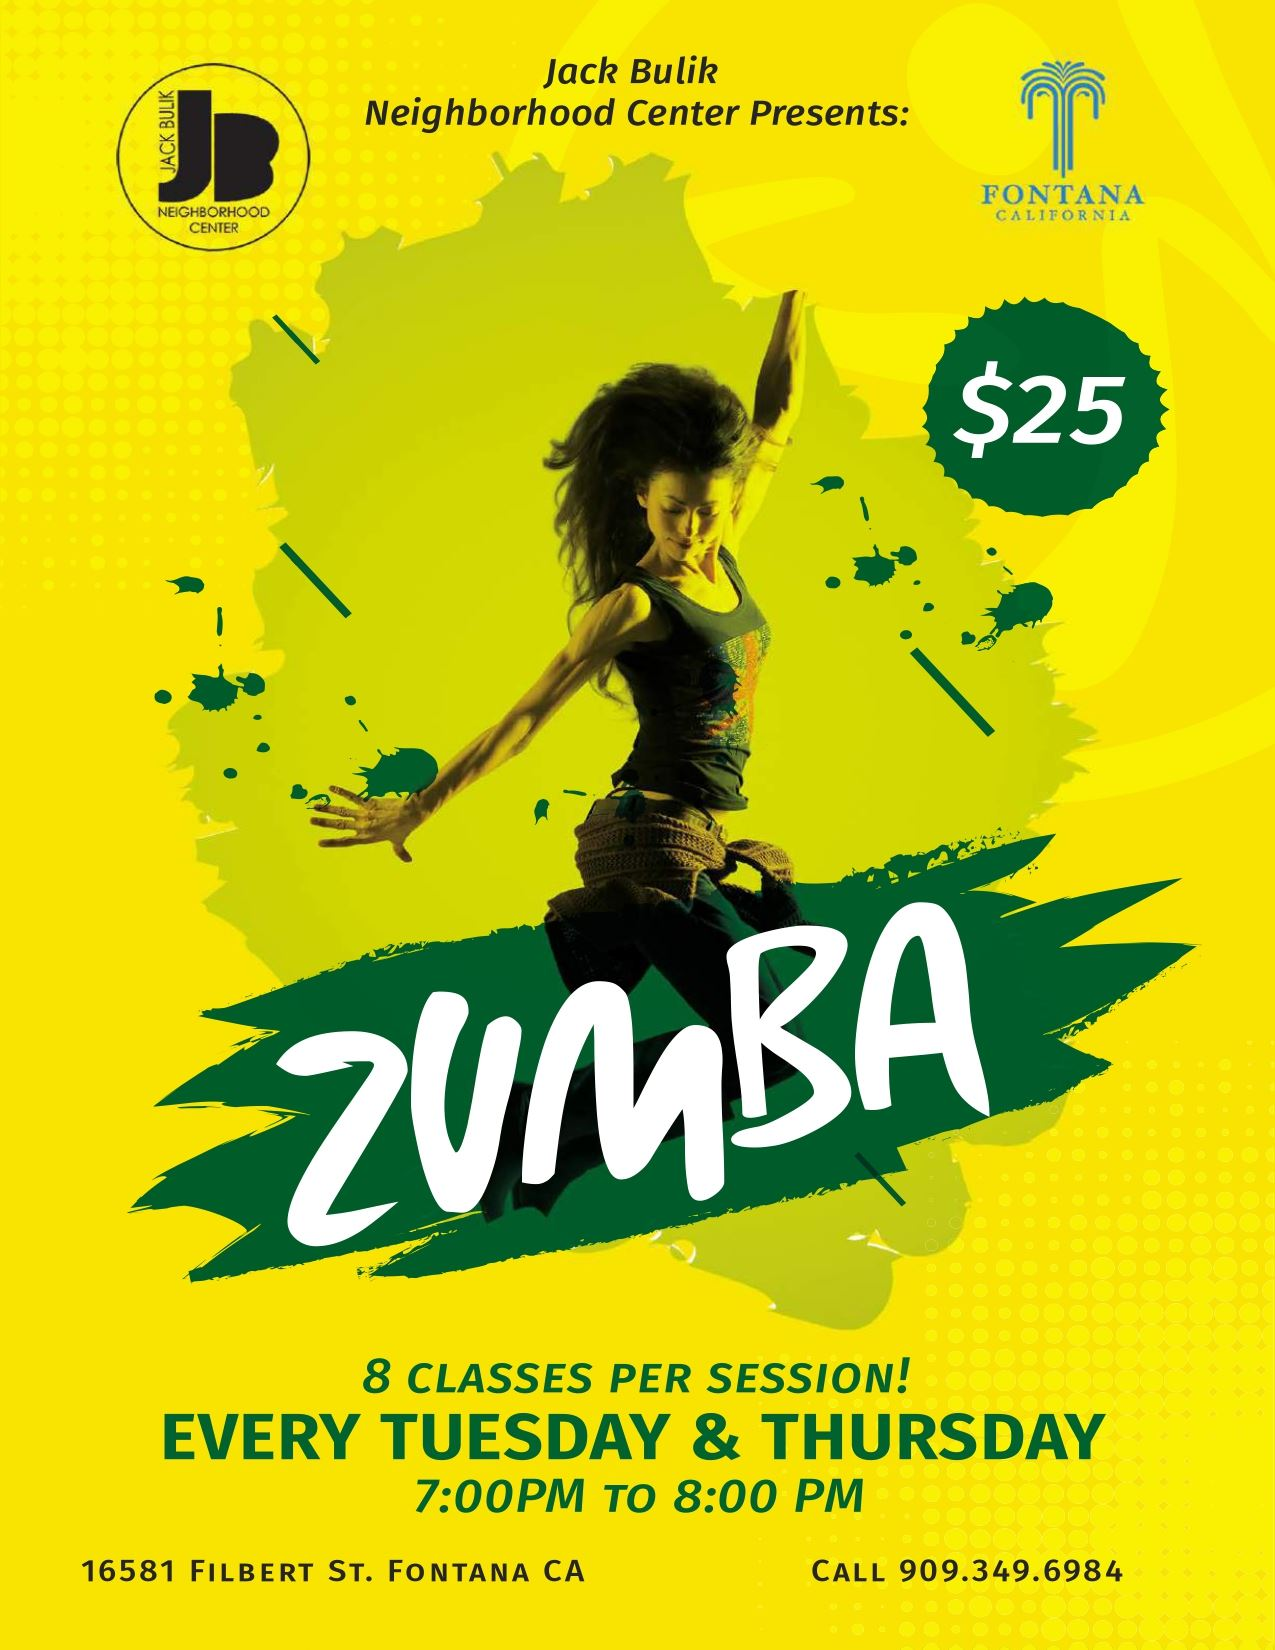 Zumba Tuesday and Thursday